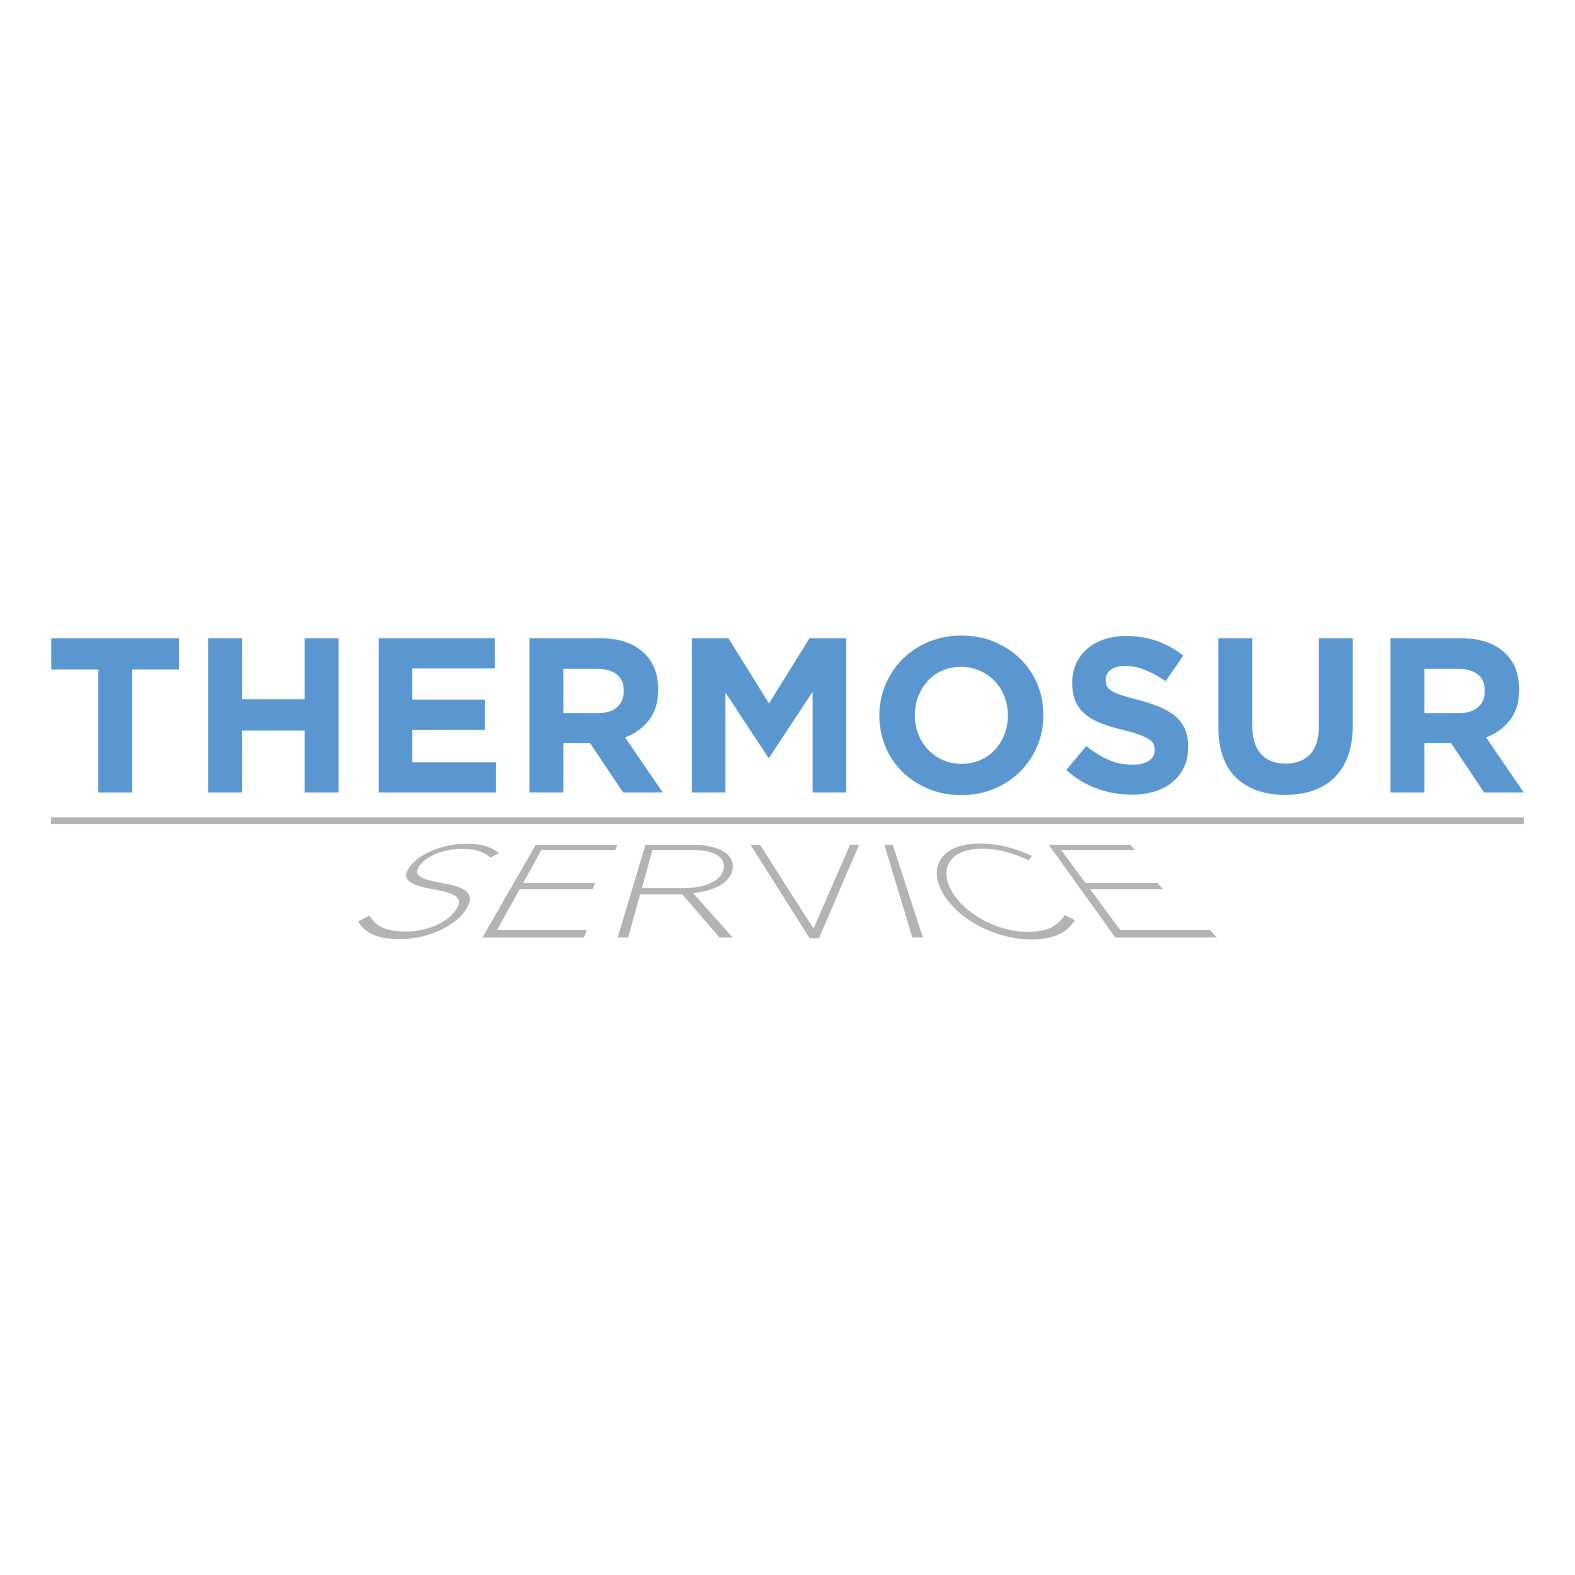 Thermosur Service